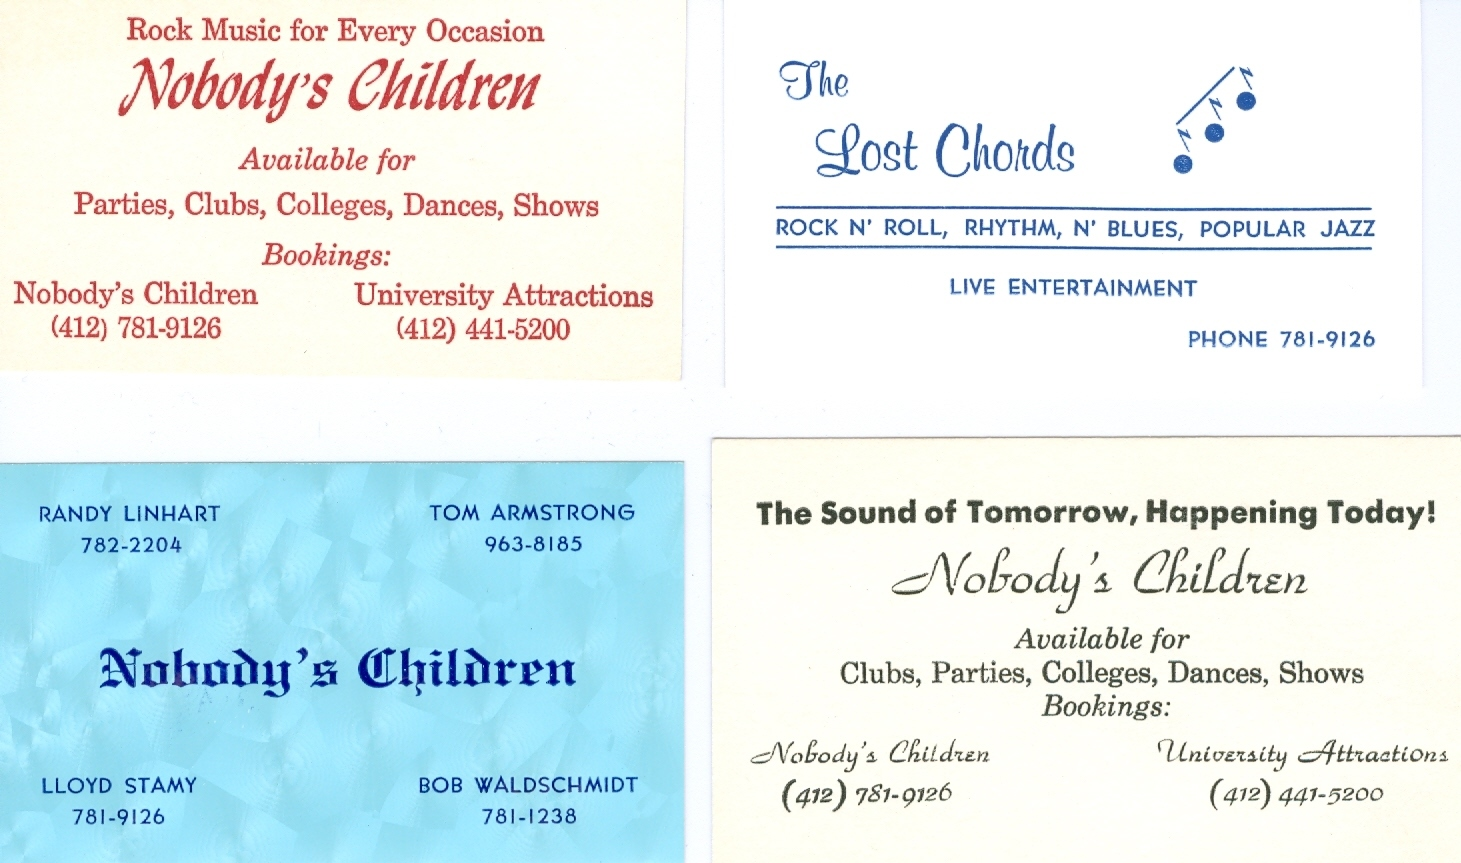 37 - Nobody's Children and The Lost Chords - Business Cards .jpg